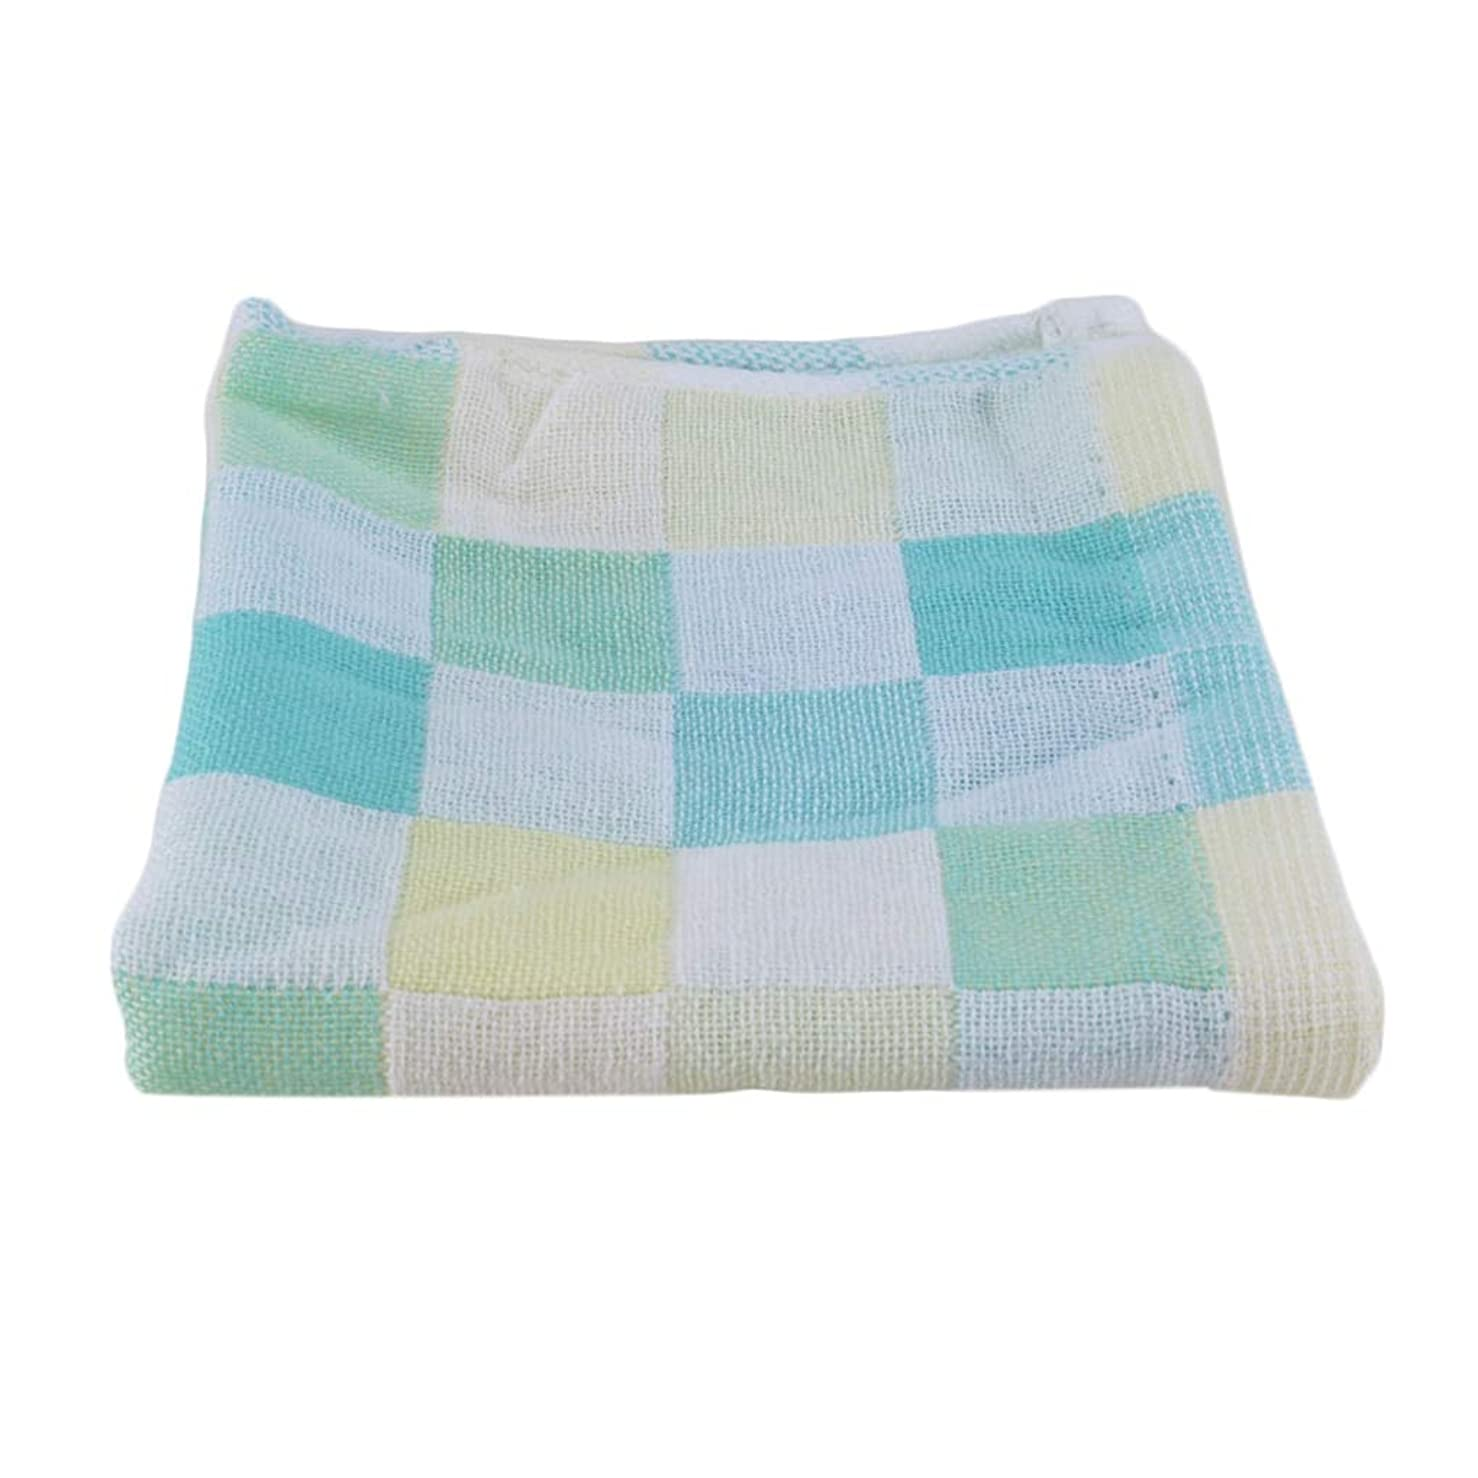 関税高さ命令Maxcrestas - 28*28cm Square Towels Cotton gauze Plaid Towel Kids Bibs Daily Use Hand Face Towels for Kids